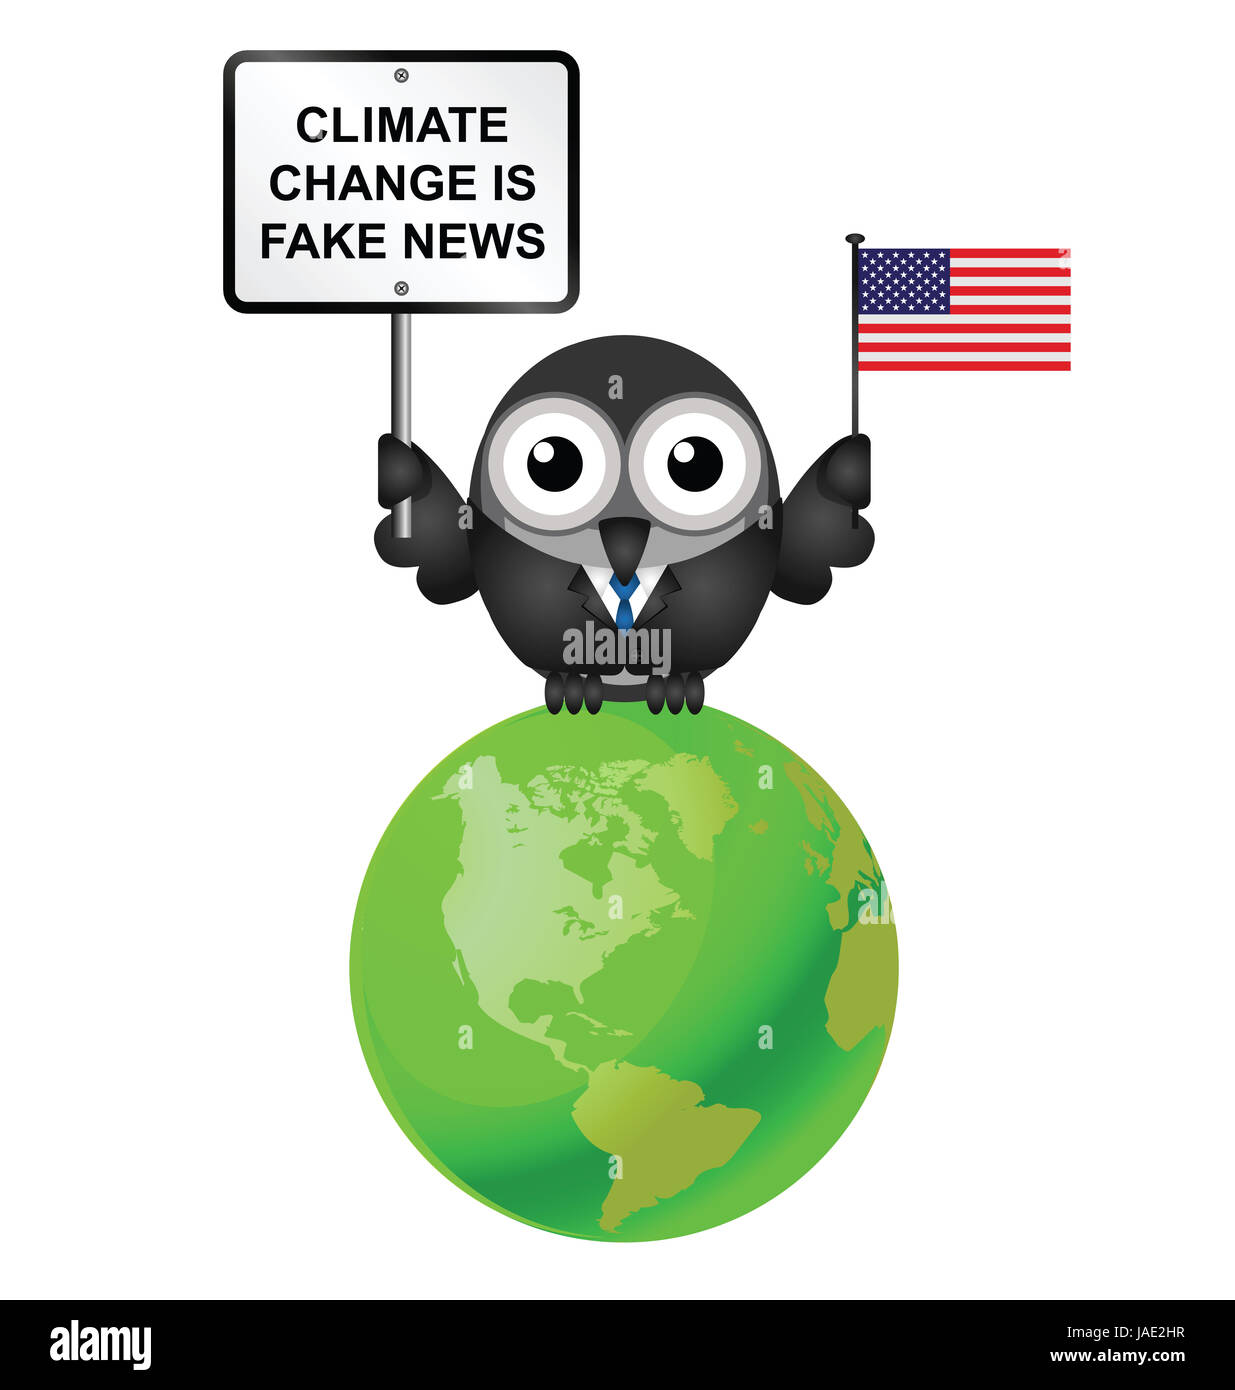 Comical American climate change denial after pulling out of the Paris  Agreement - Stock Image